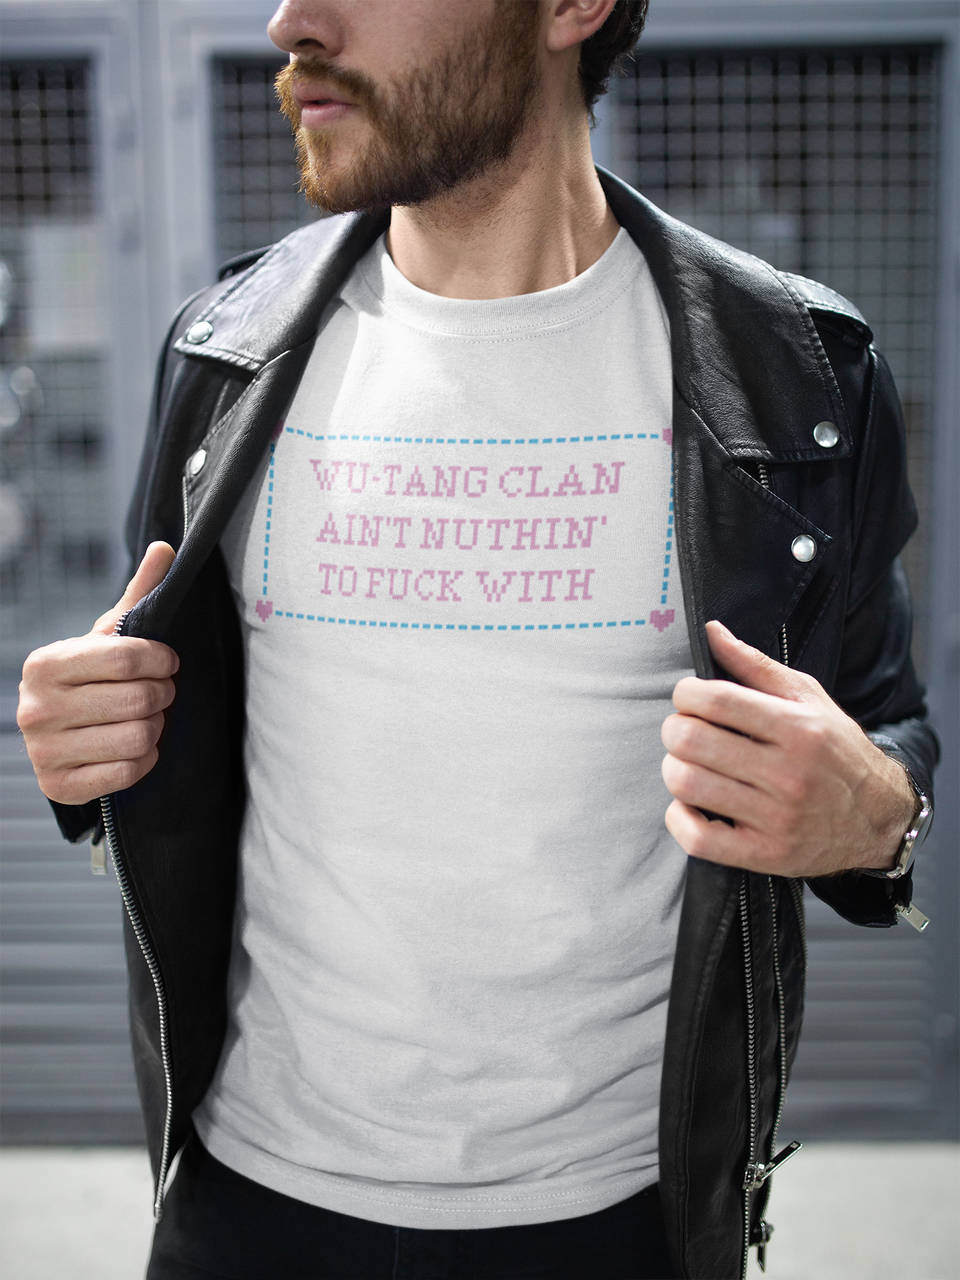 Wu-Tang Clan Ain't Nuthin To F*ck With T-Shirt